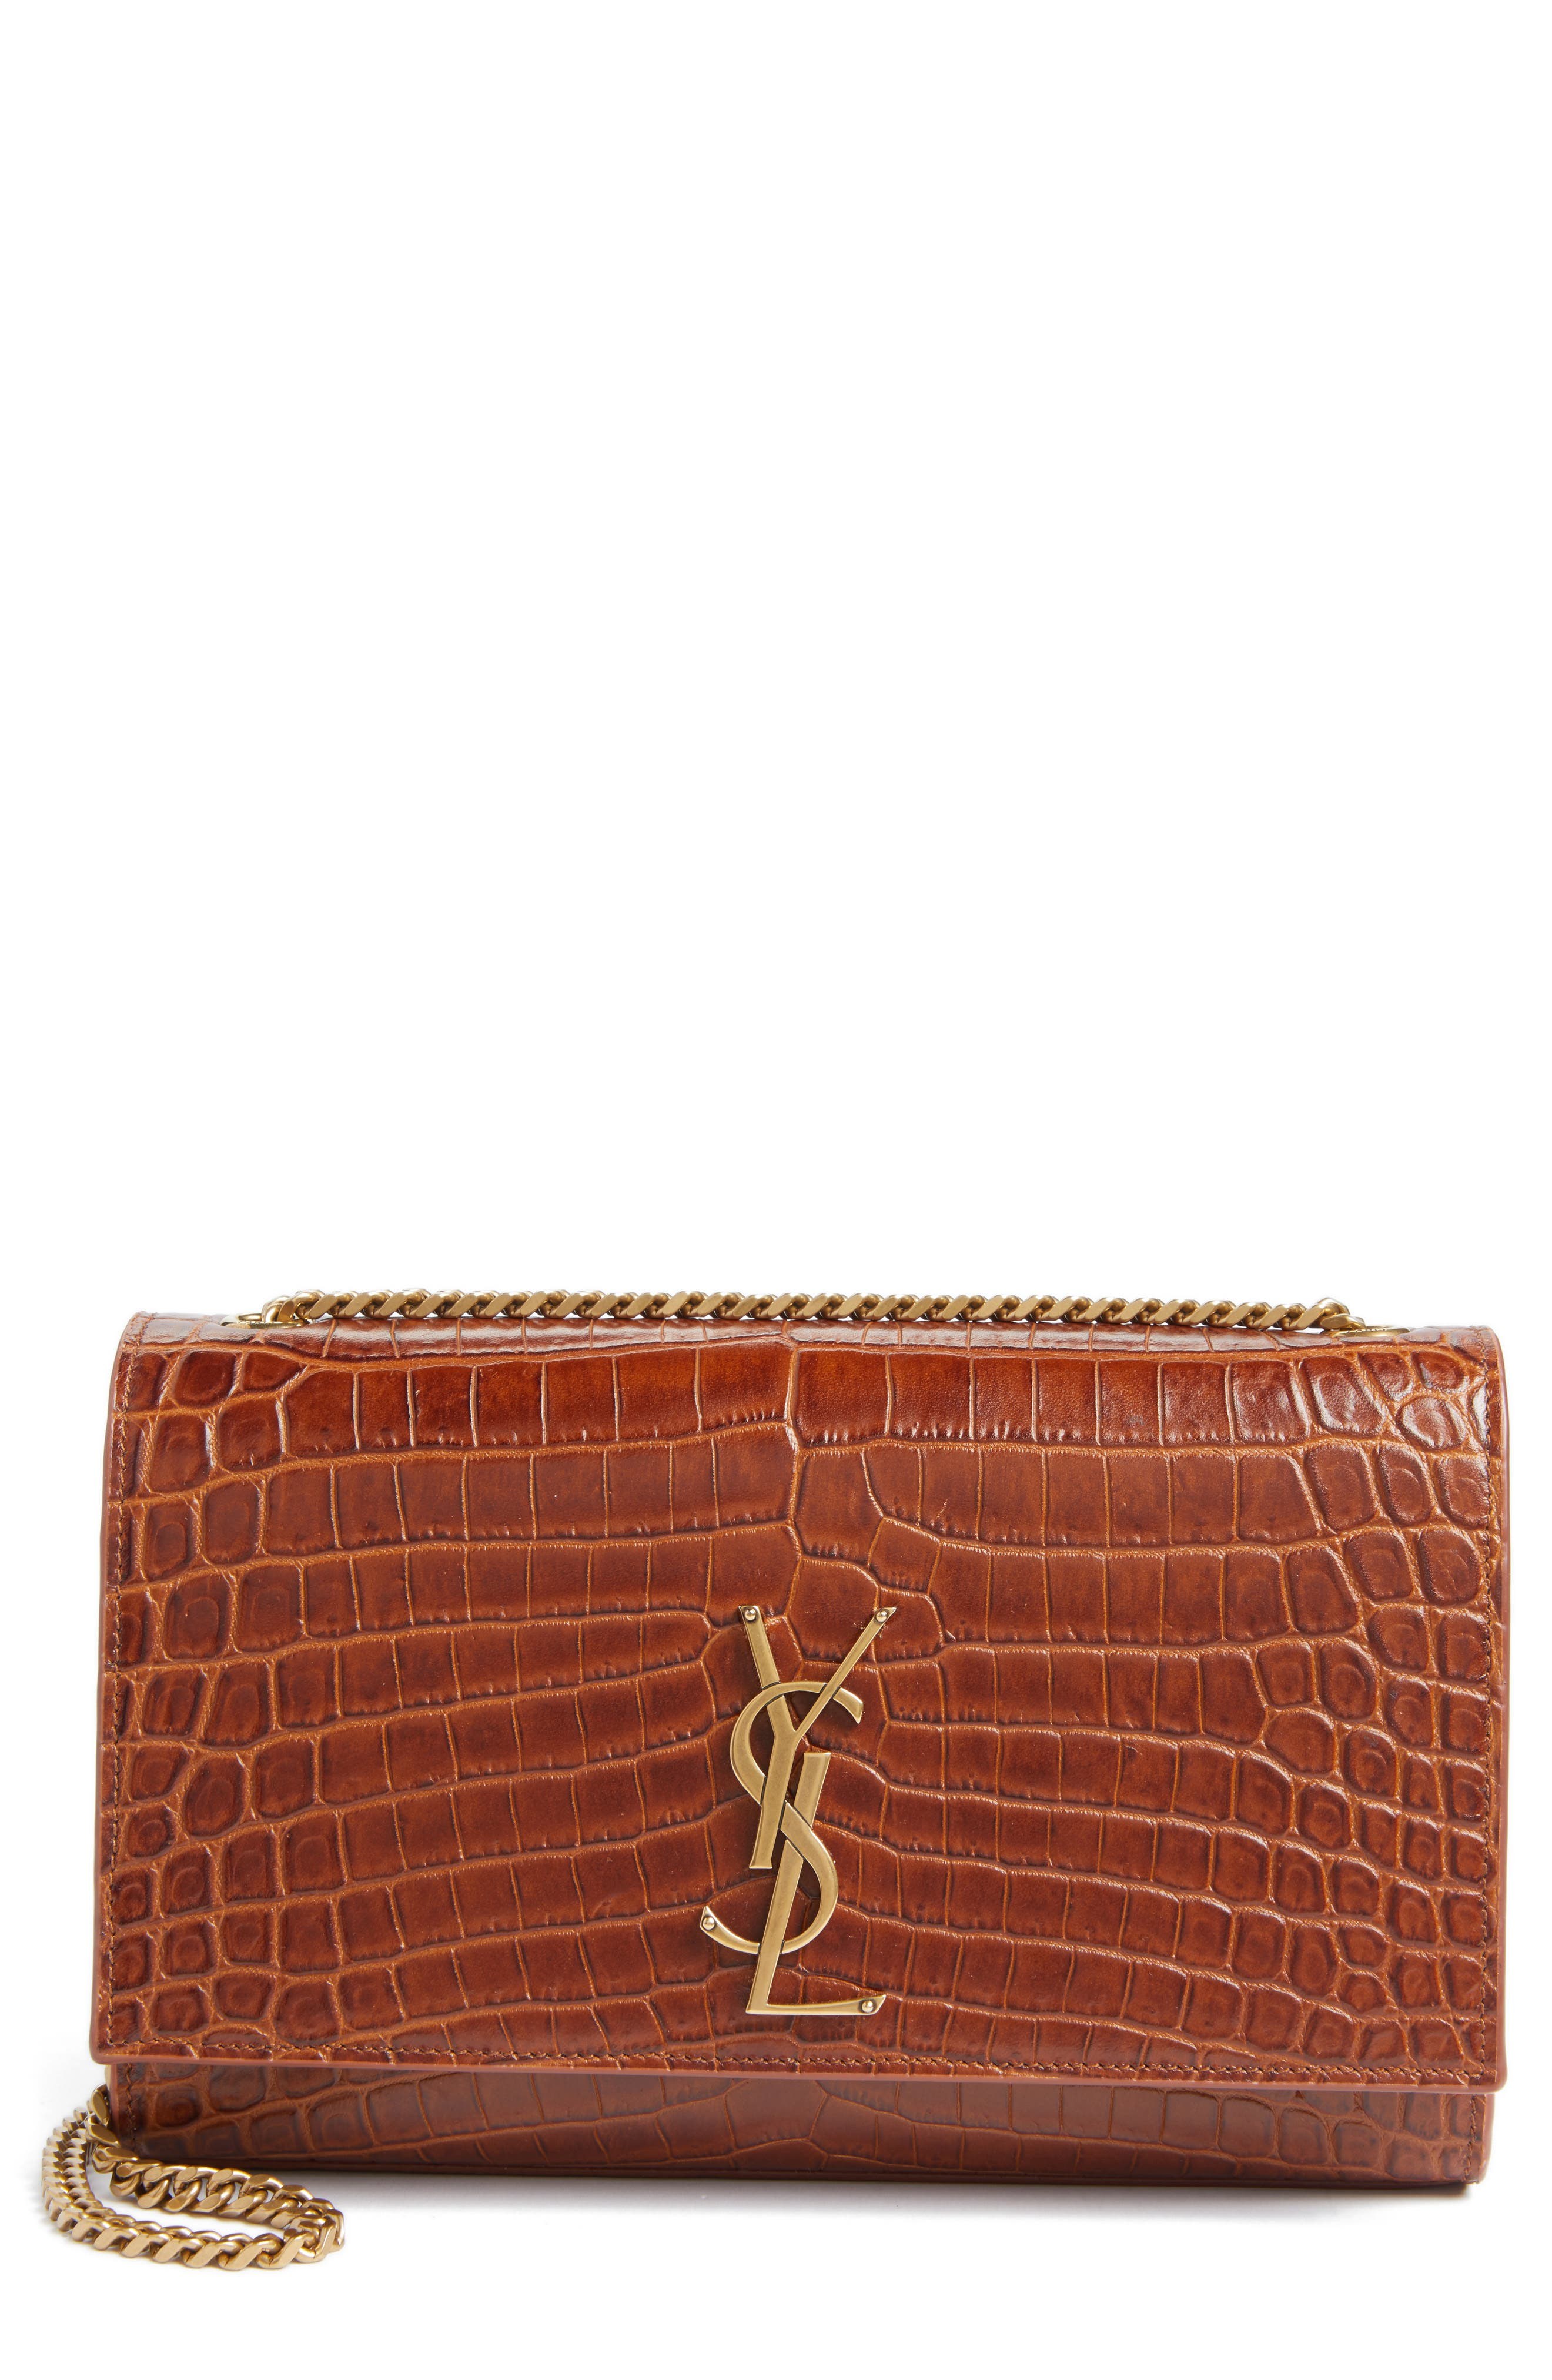 Saint Laurent Medium Kate Croc Embossed Leather Shoulder Bag